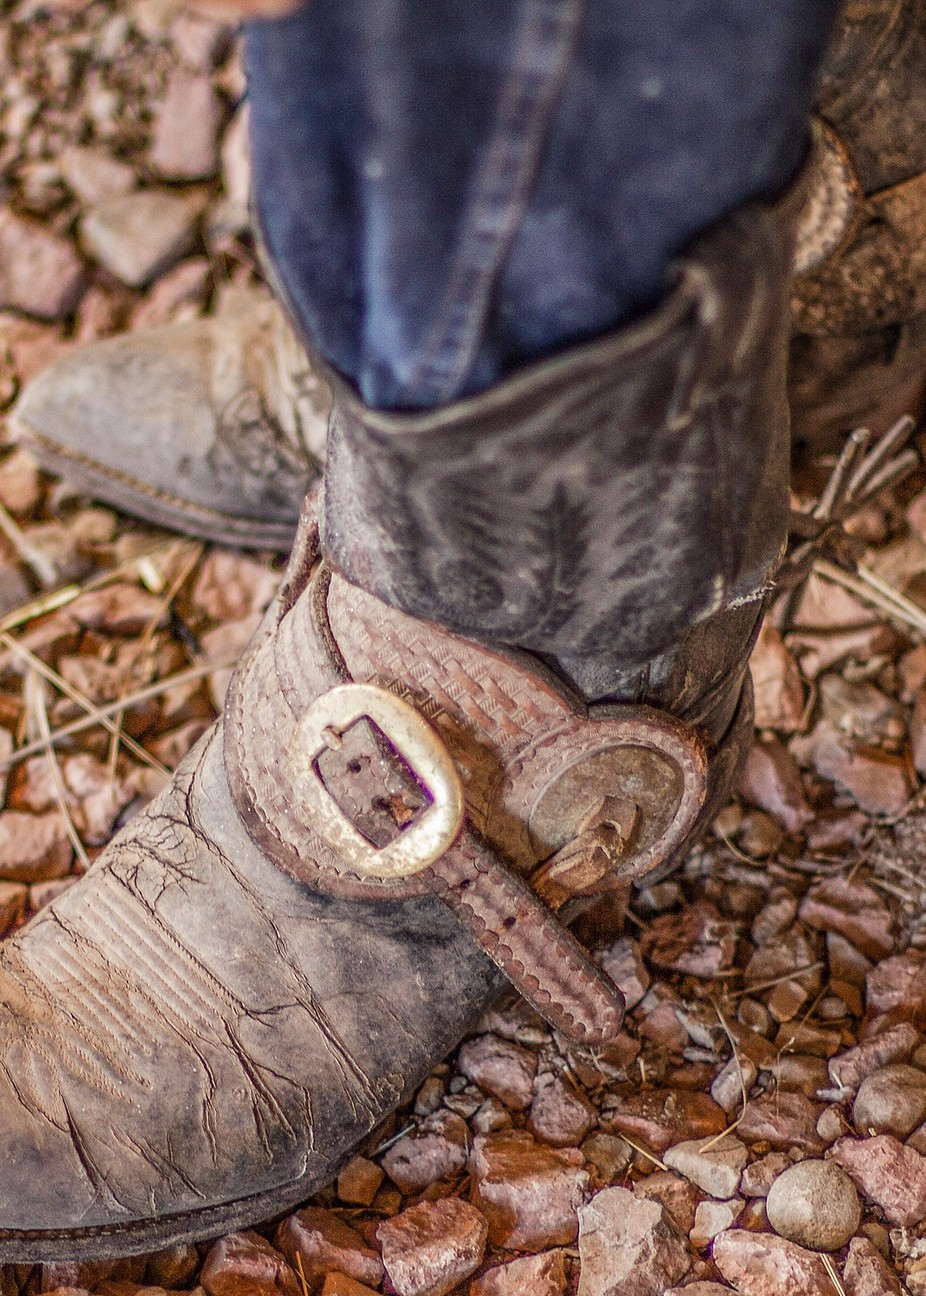 Real cowboy shows his worn boots and the spurs he wears.